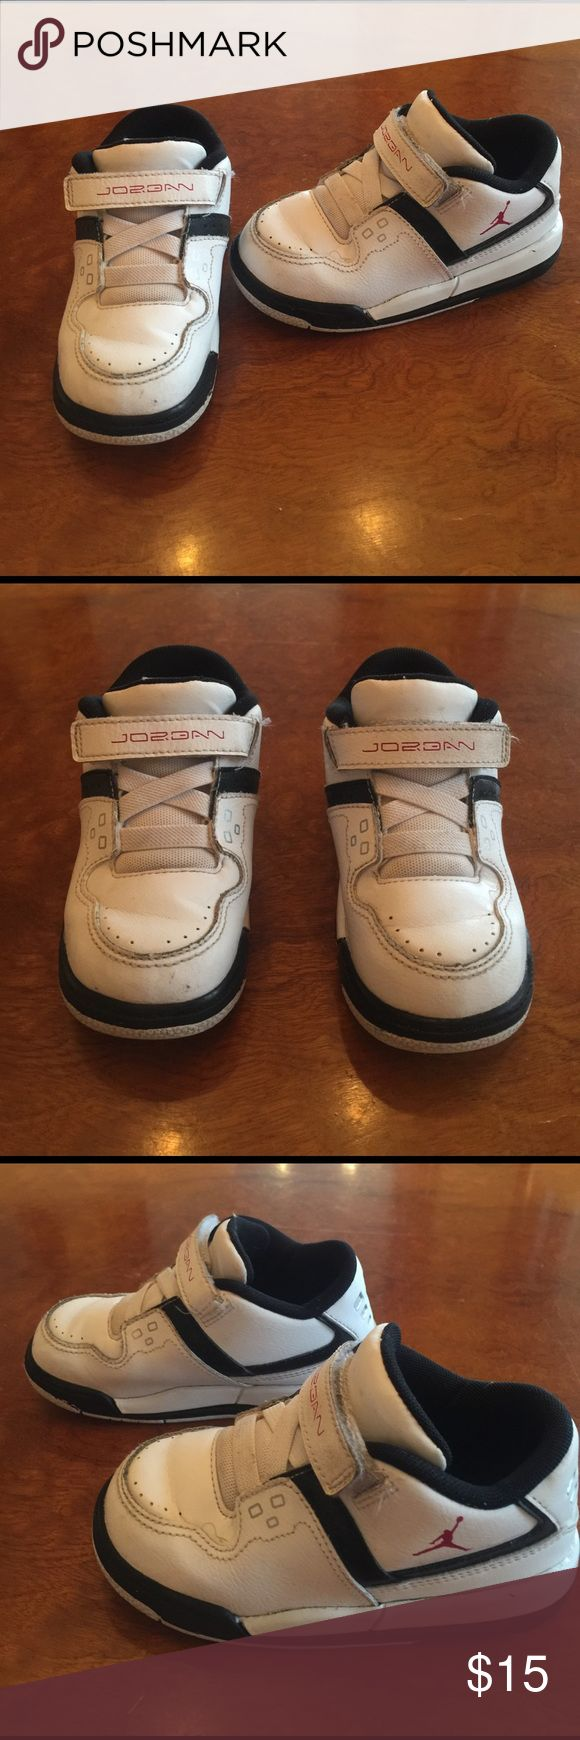 Kids Jordan Athletic Shoes Toddler Size 7 Nike Jordans Size 7/8 Toddler. No tags..Daughter wore last year just a few x's & tags came off in washer. Perfect condition! Super comfy too for growing feet! Nike Shoes